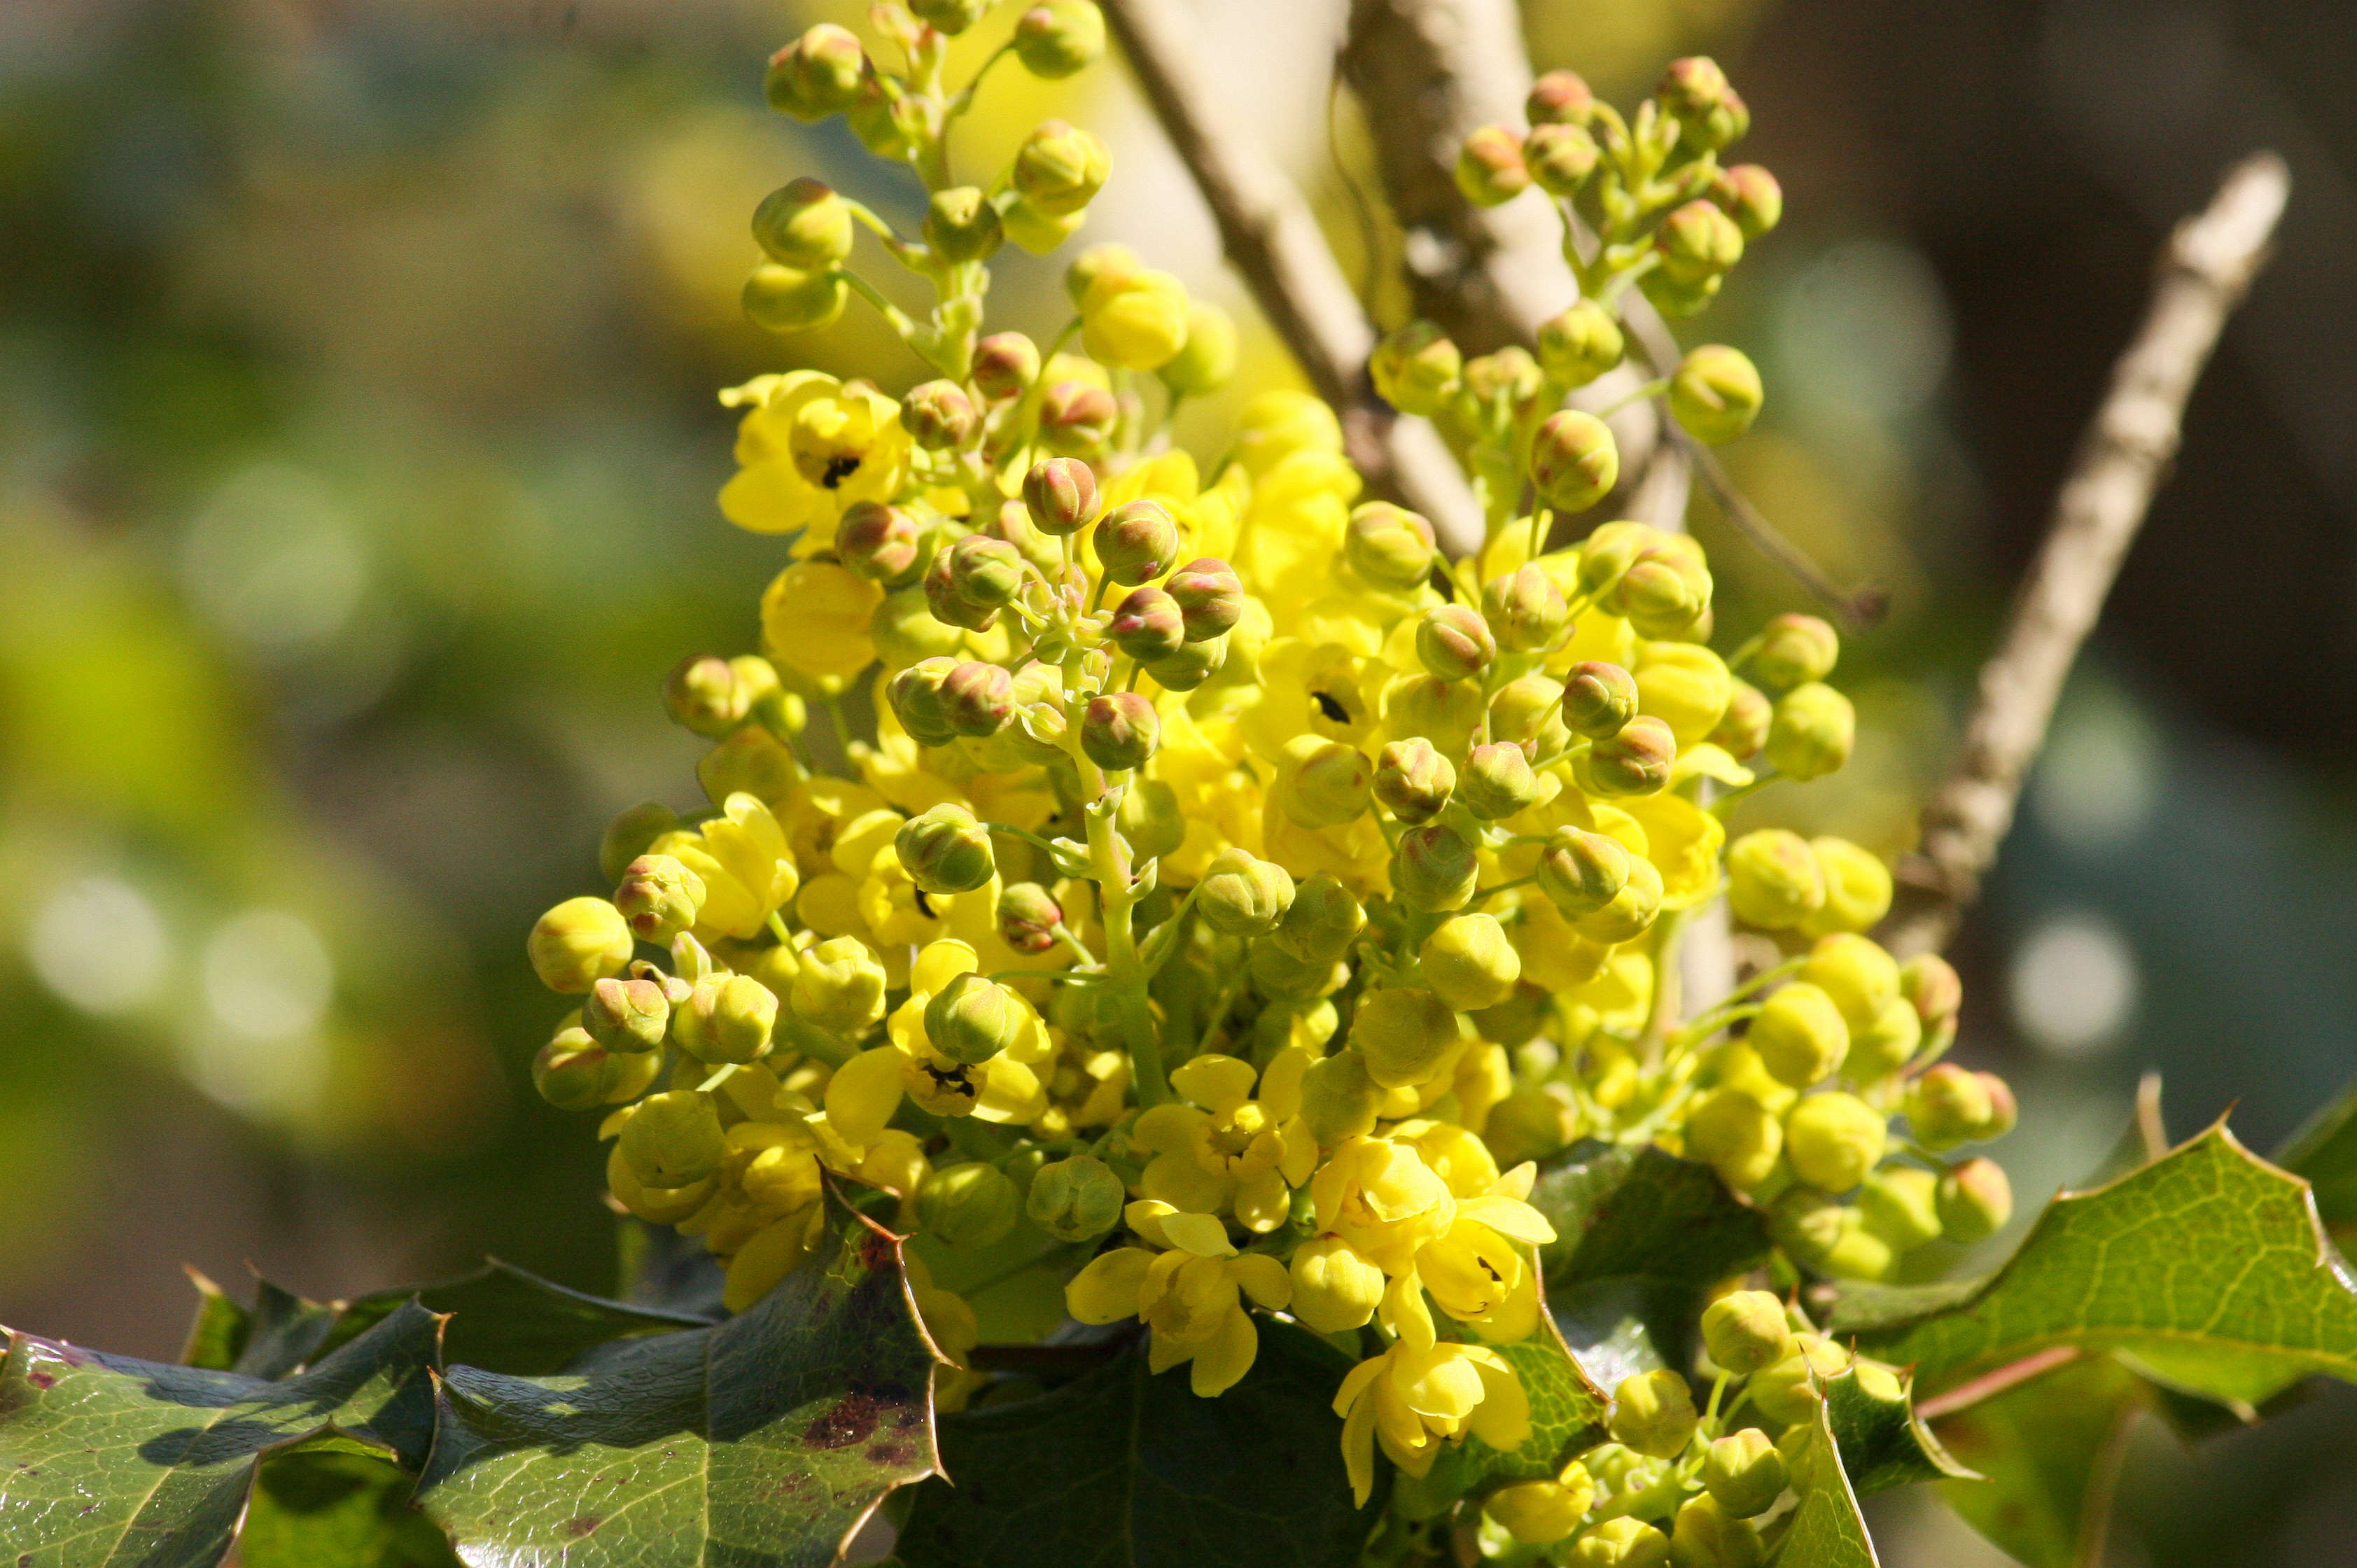 mahonia-closeup-maja-dumat-flickr